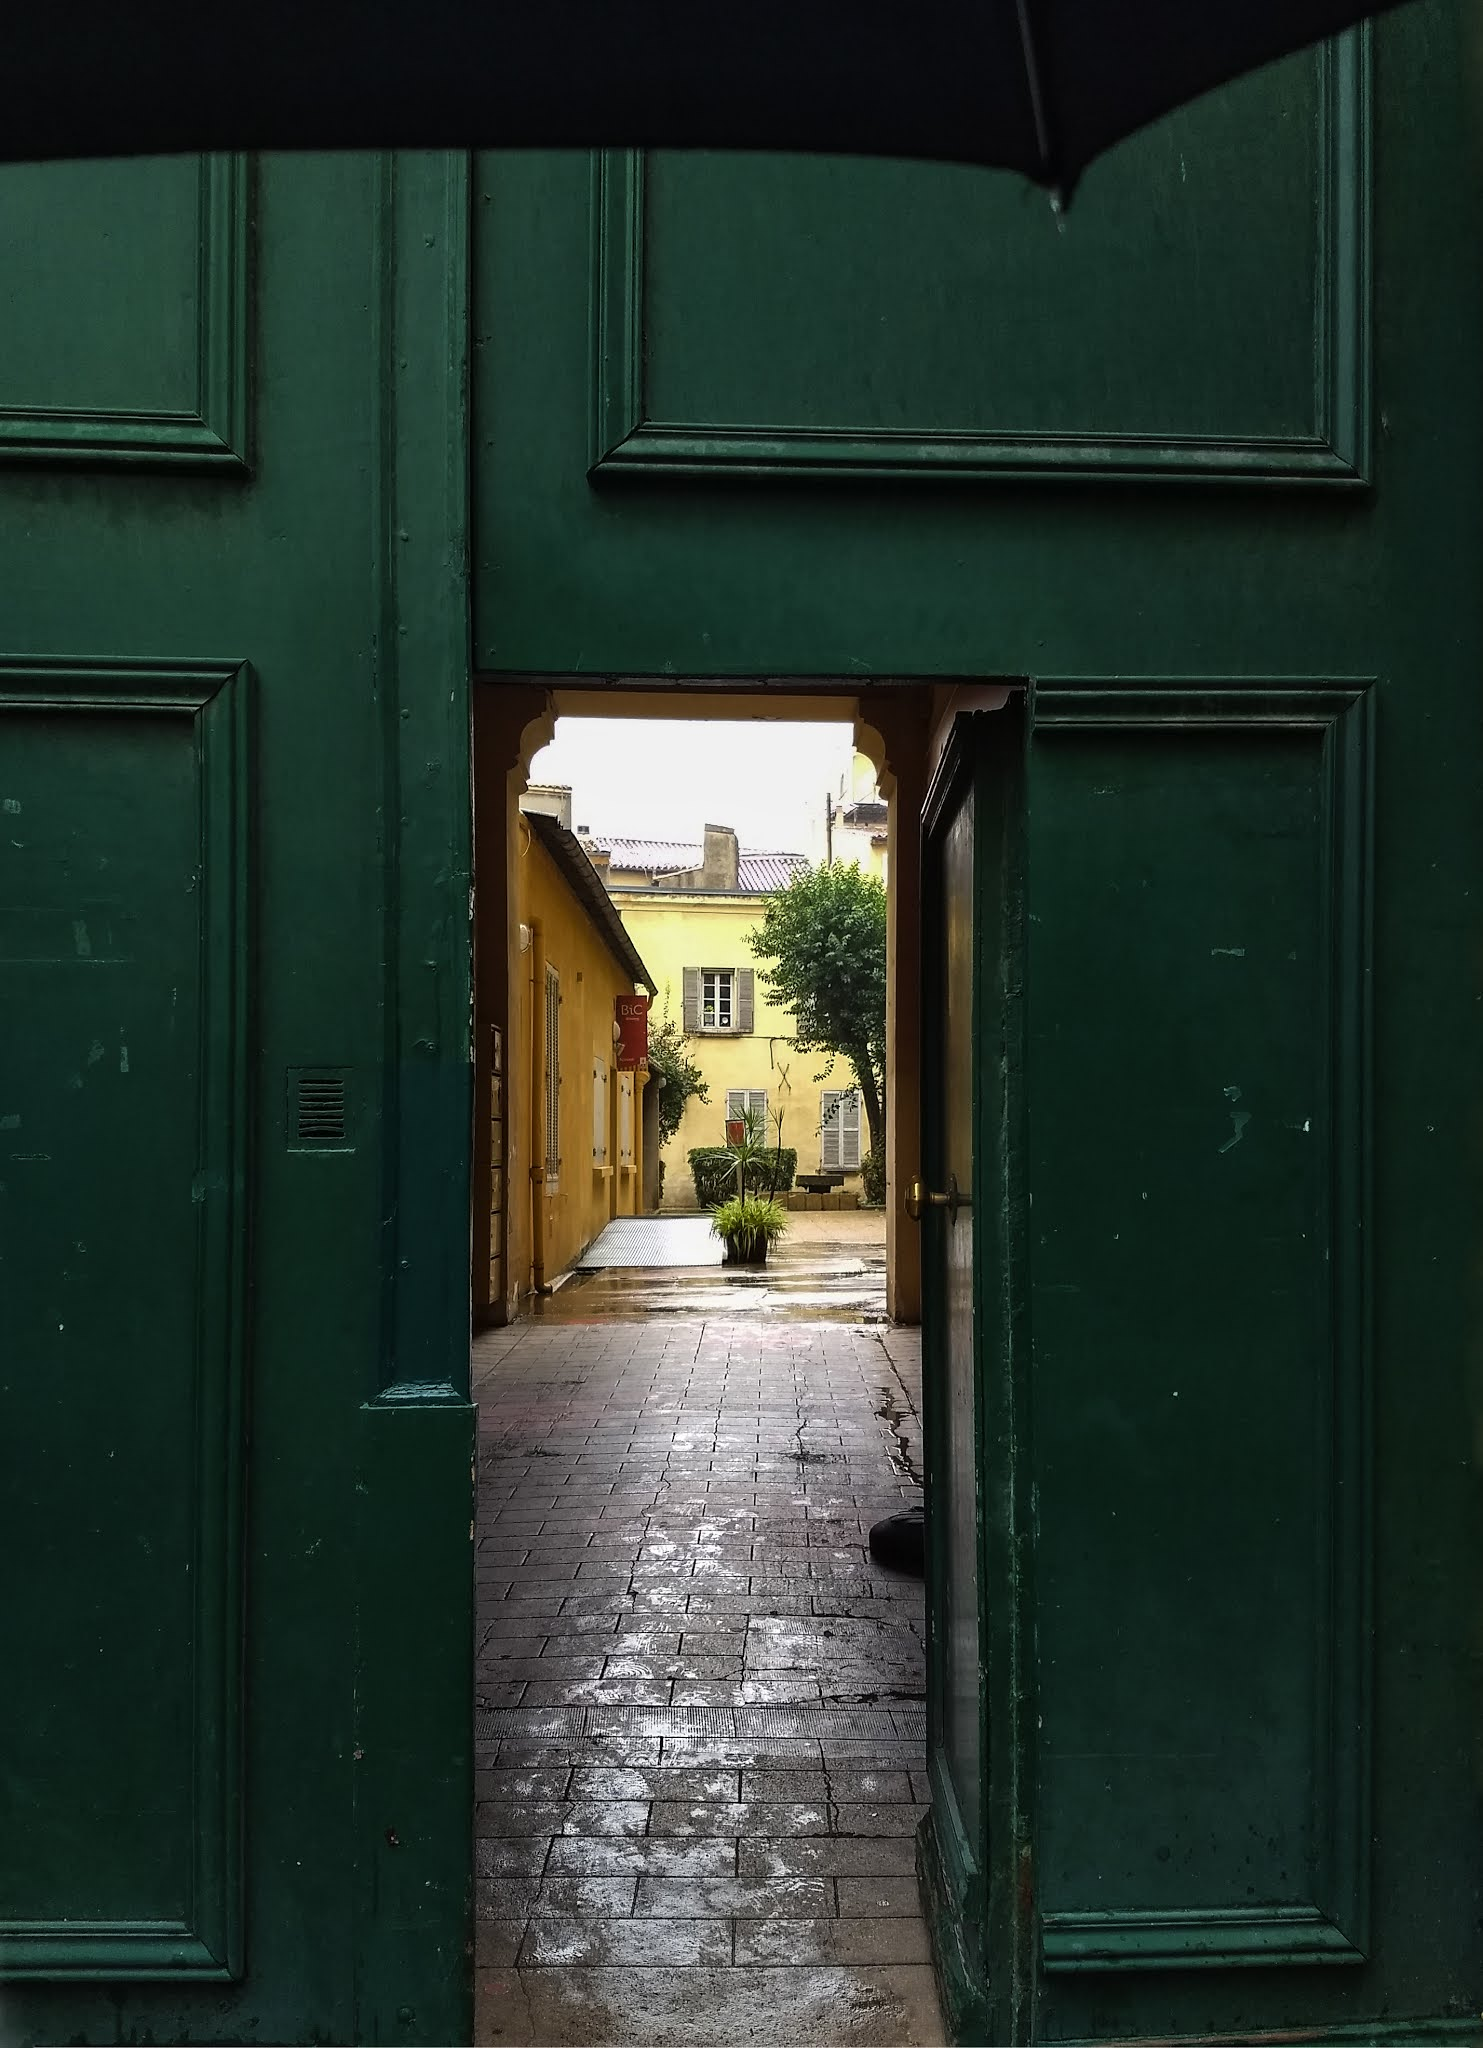 An entryway in a green doorway looking into a courtyard in Aix-en-Provence, Southern France.